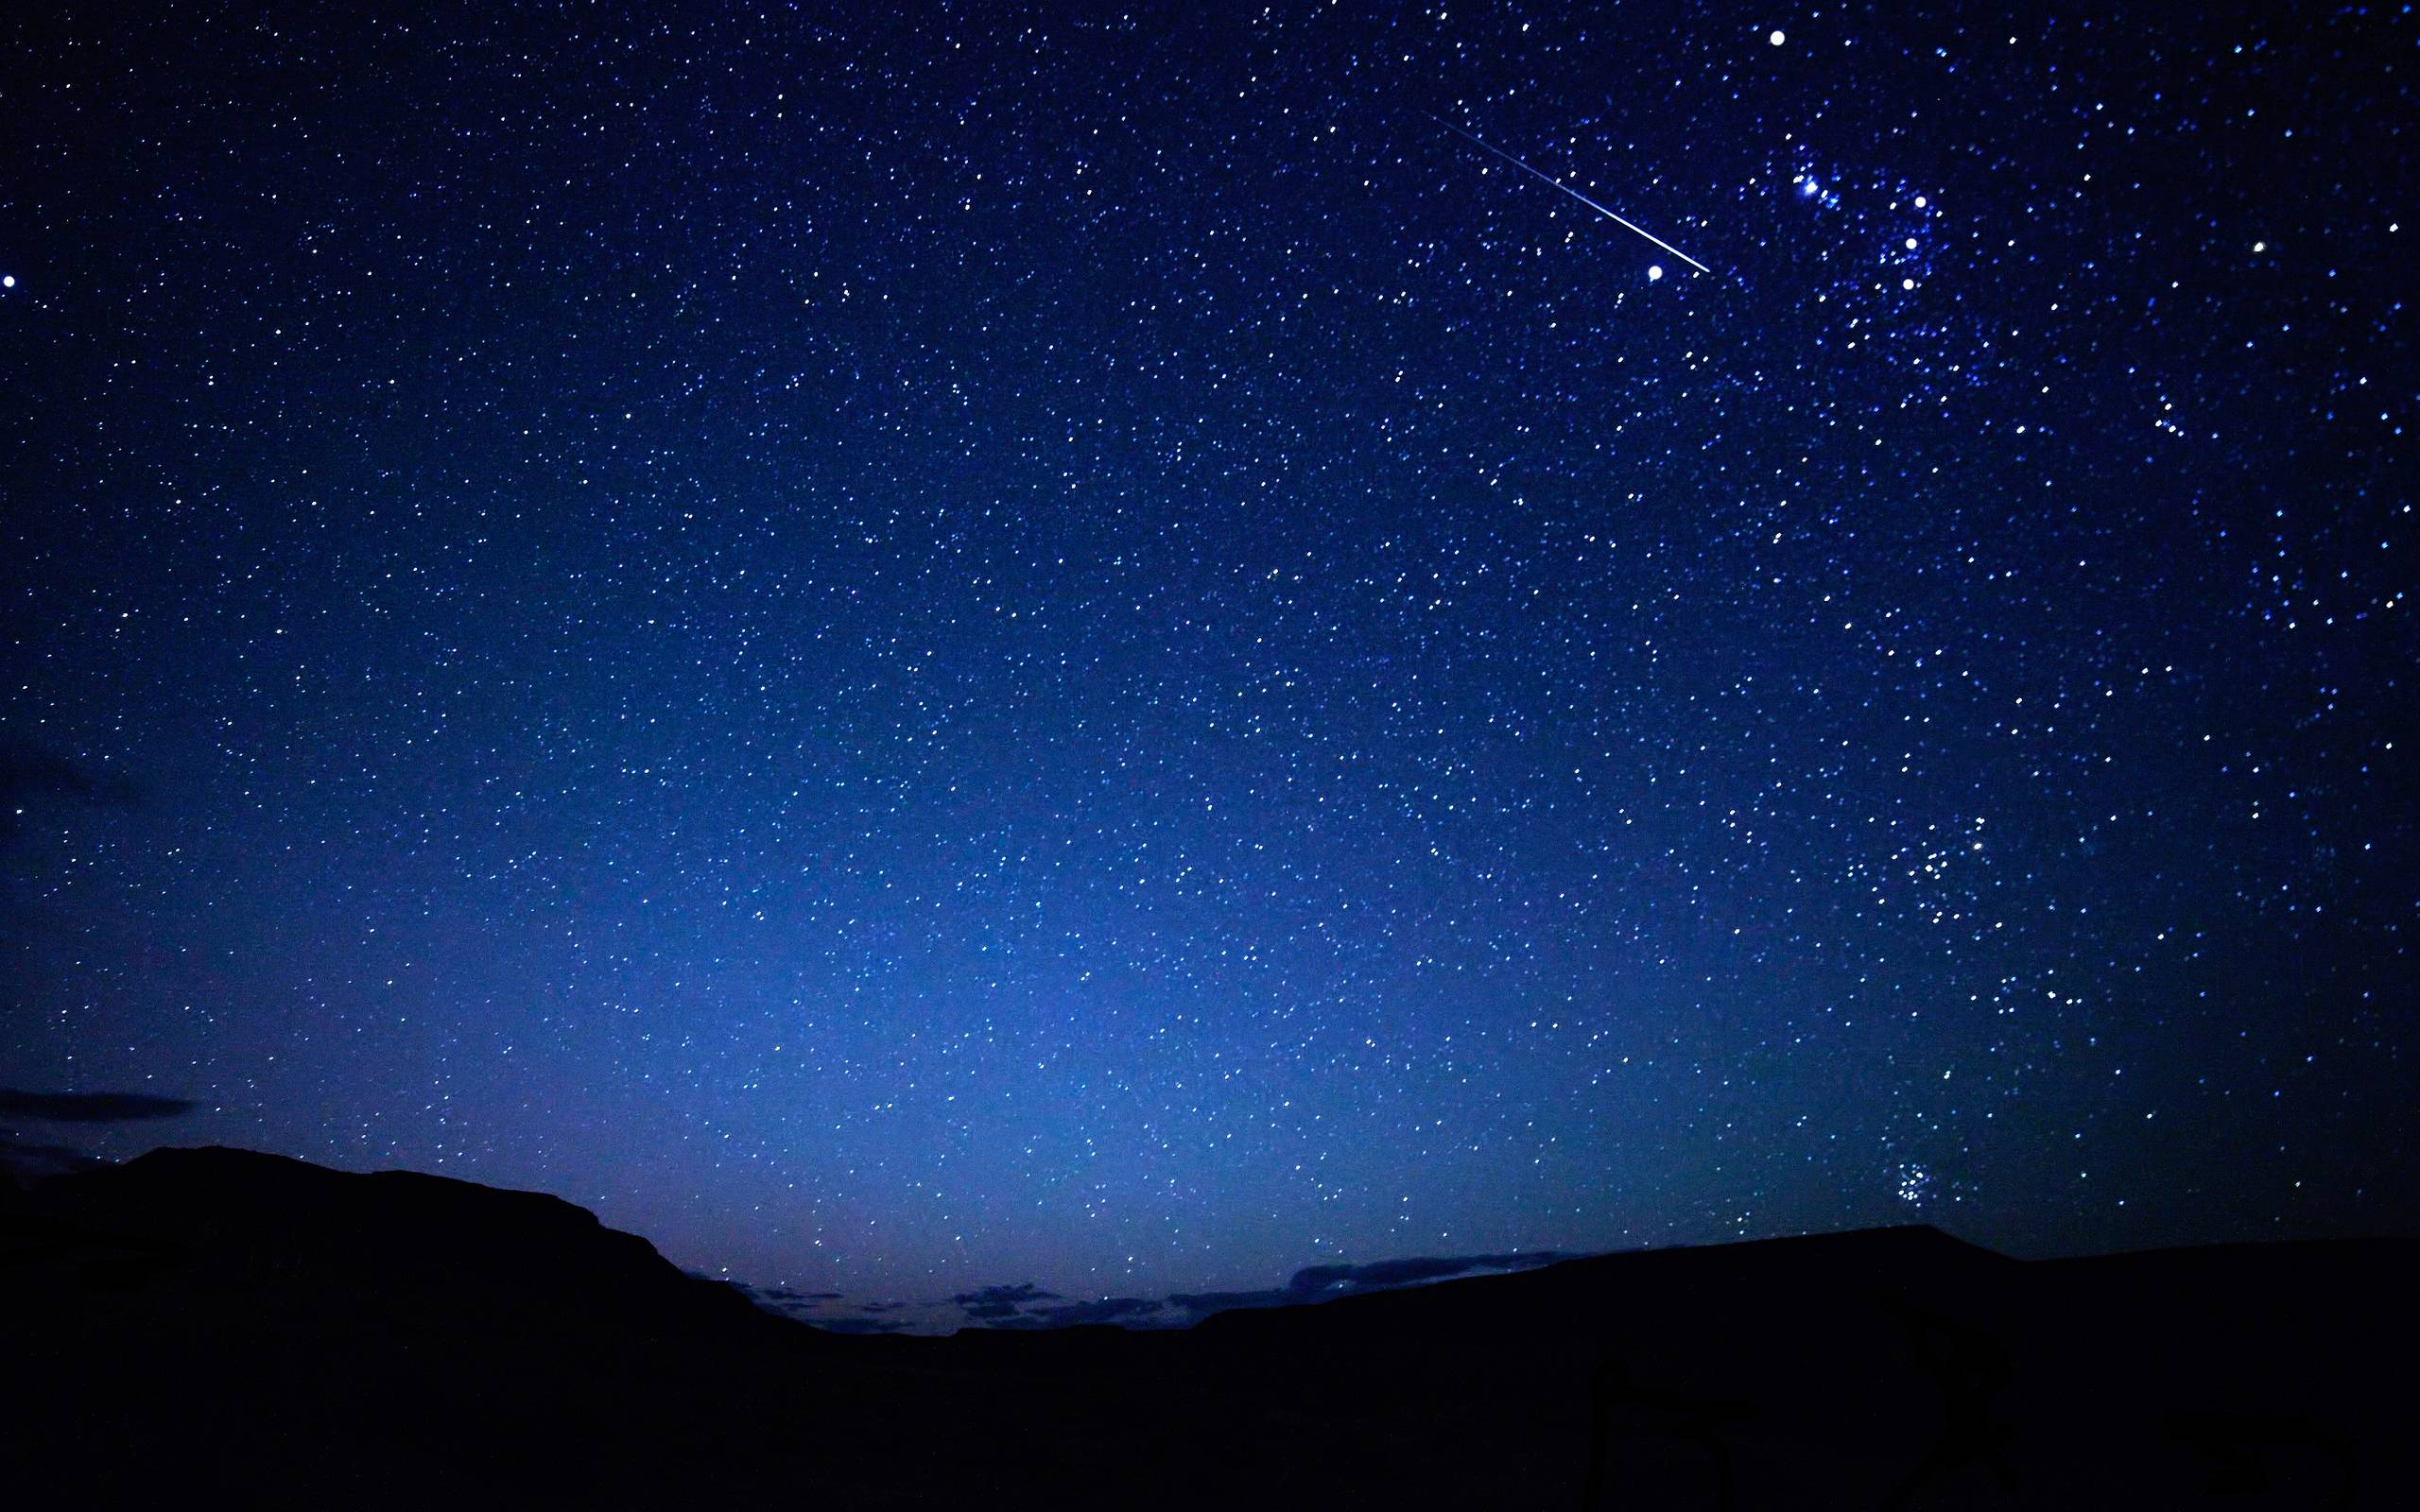 Night Sky Stars Wallpapers - Wallpaper Cave